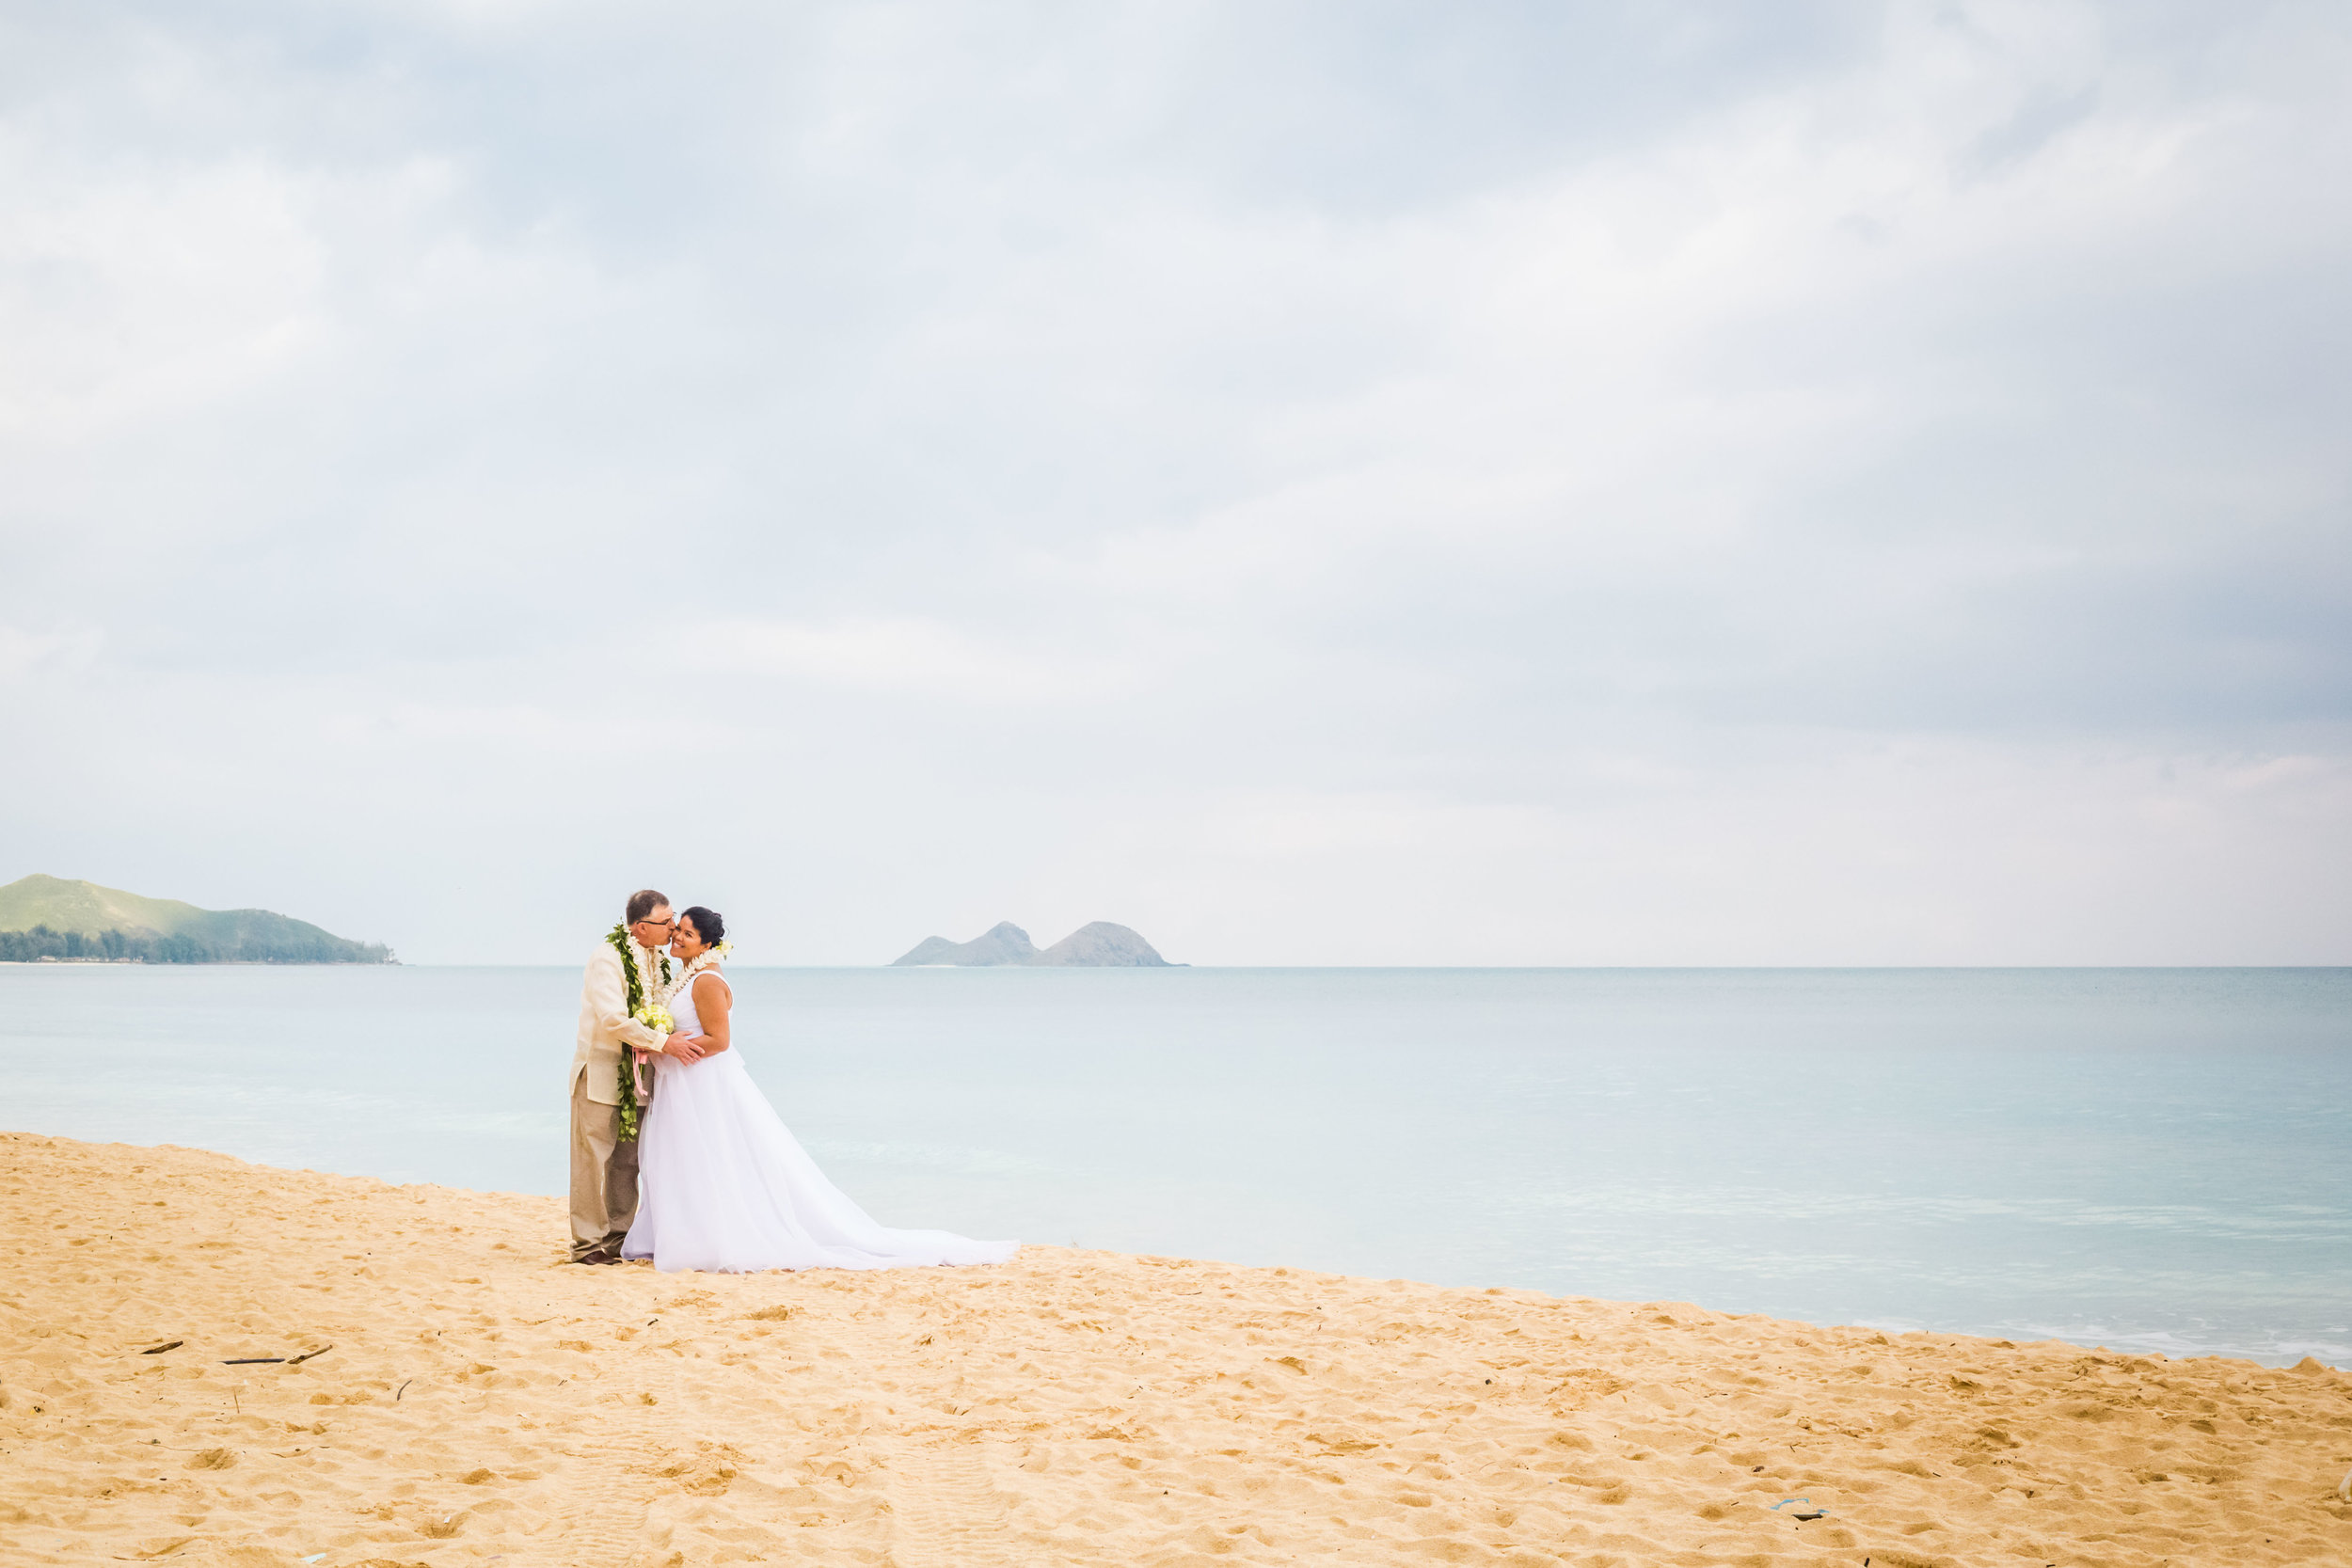 Bride and groom's post wedding bridal shoot on Hawaiian beach.